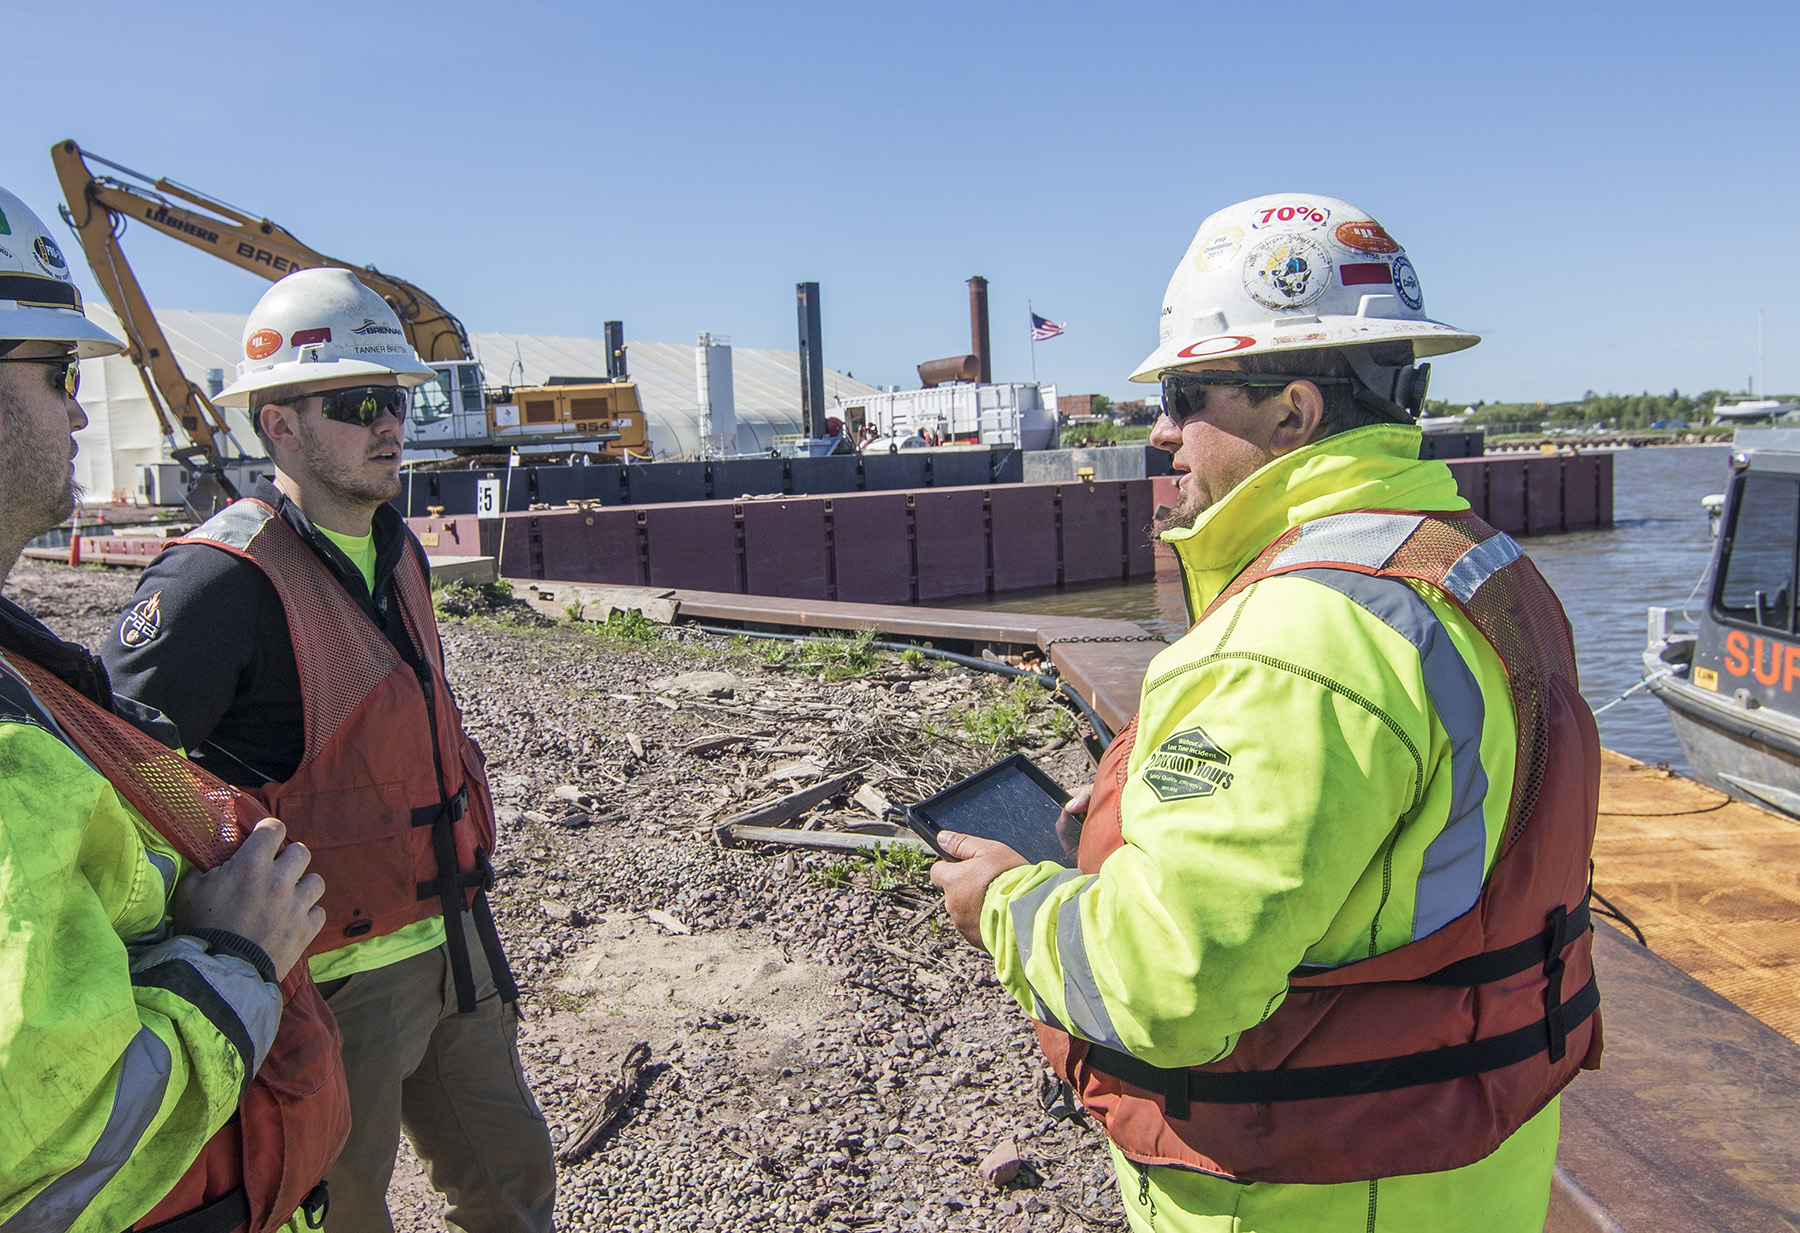 Onsite safety meeting with tablet